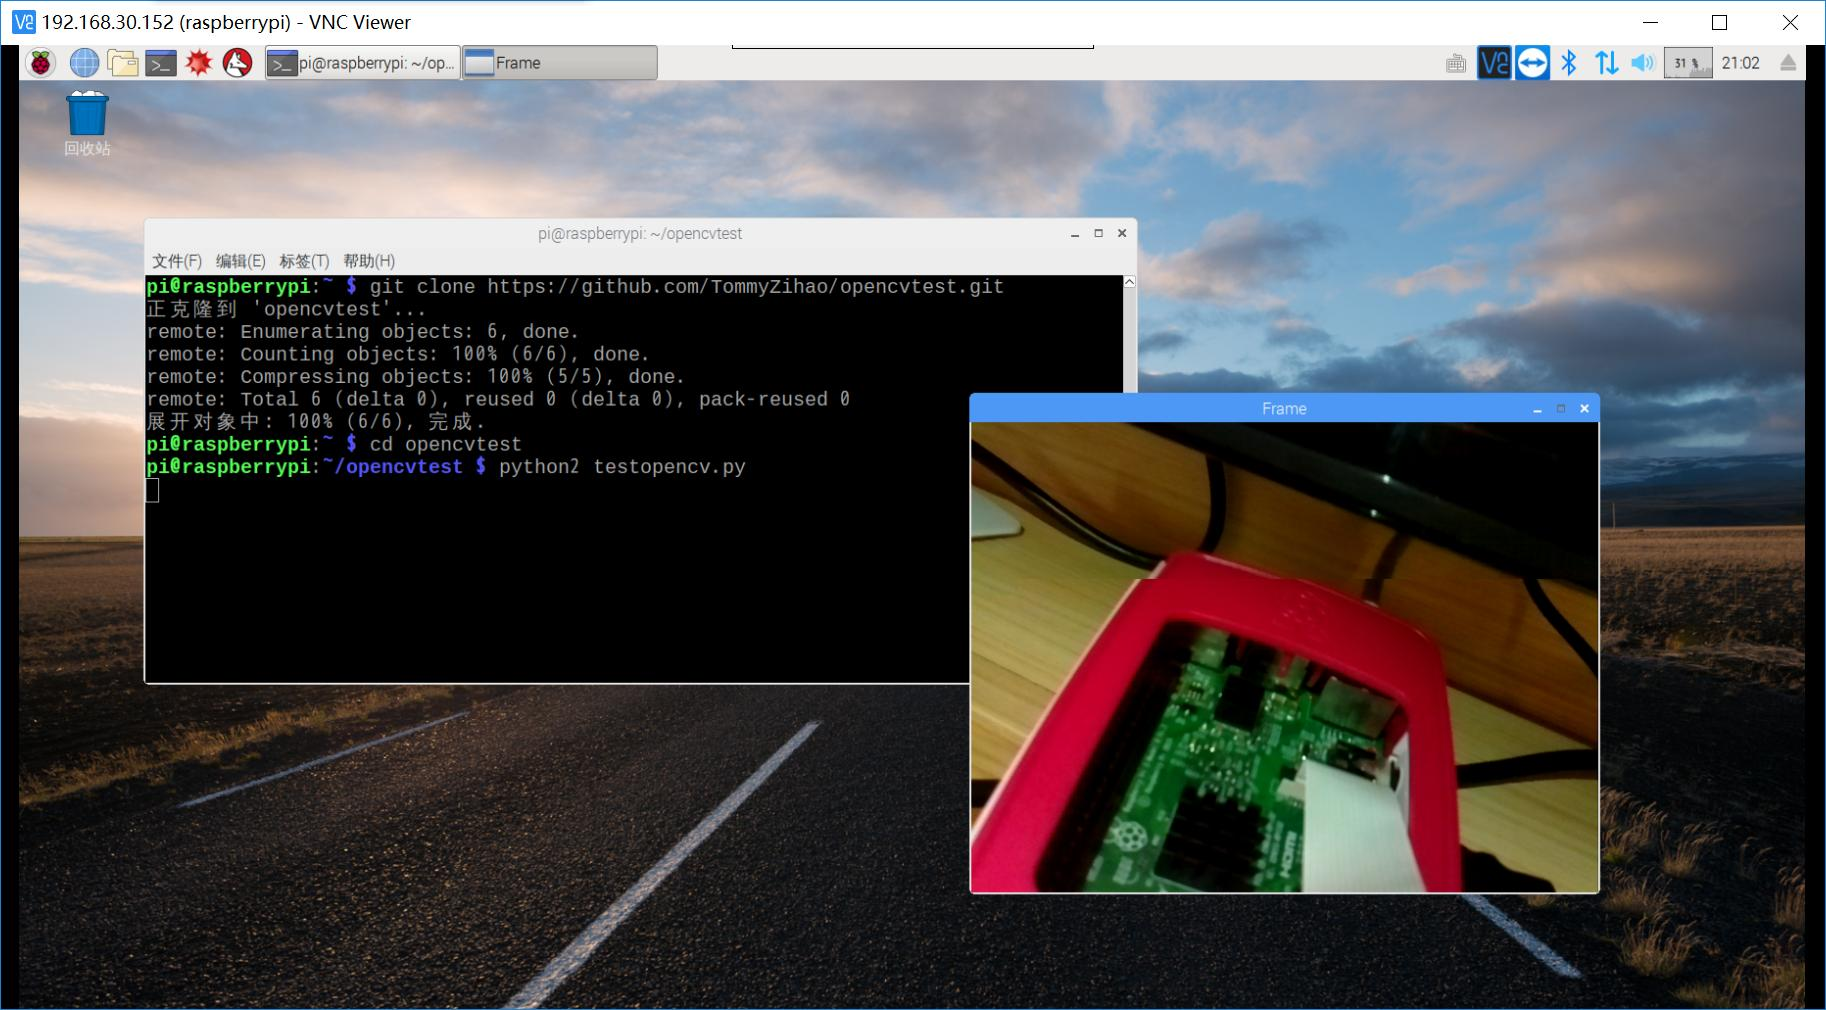 Raspberry party install opencv - Programmer Sought